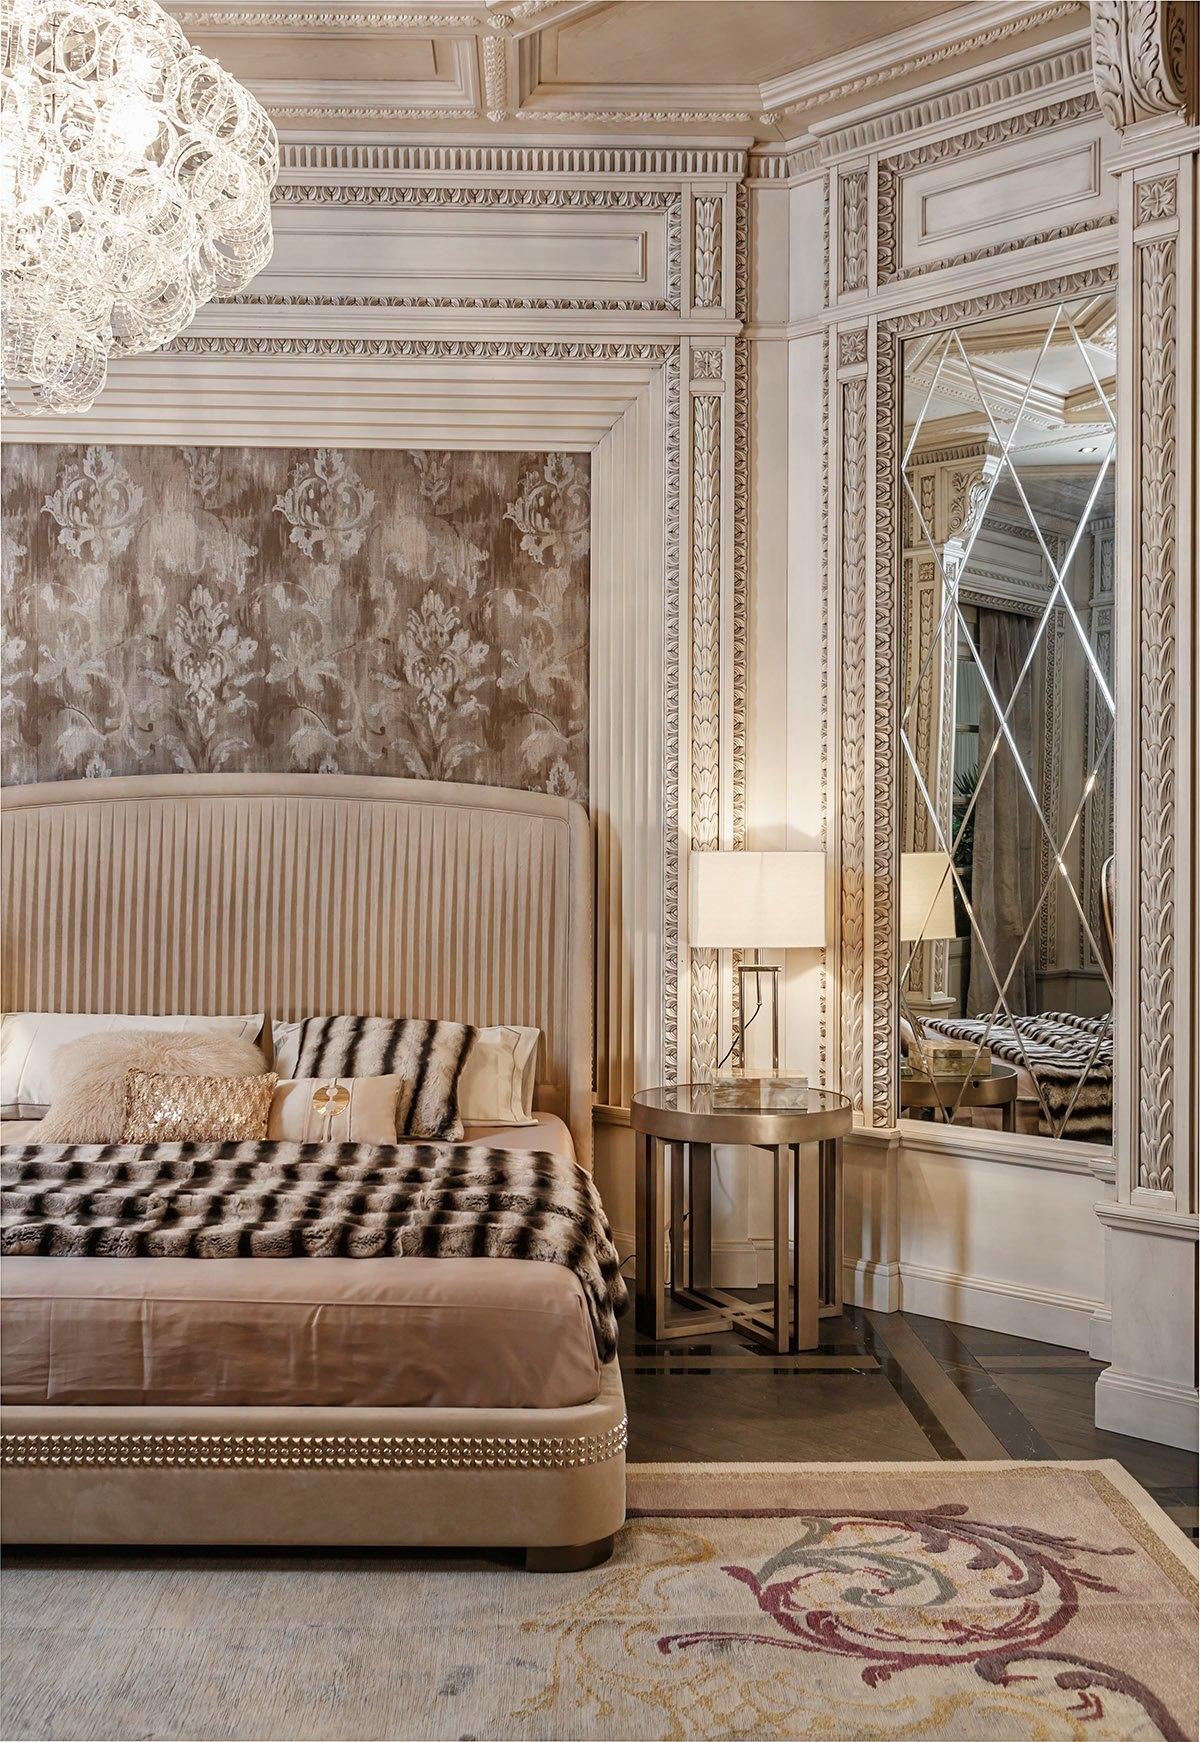 Neoclassical and art deco features in two luxurious interiors Art deco bedroom ideas